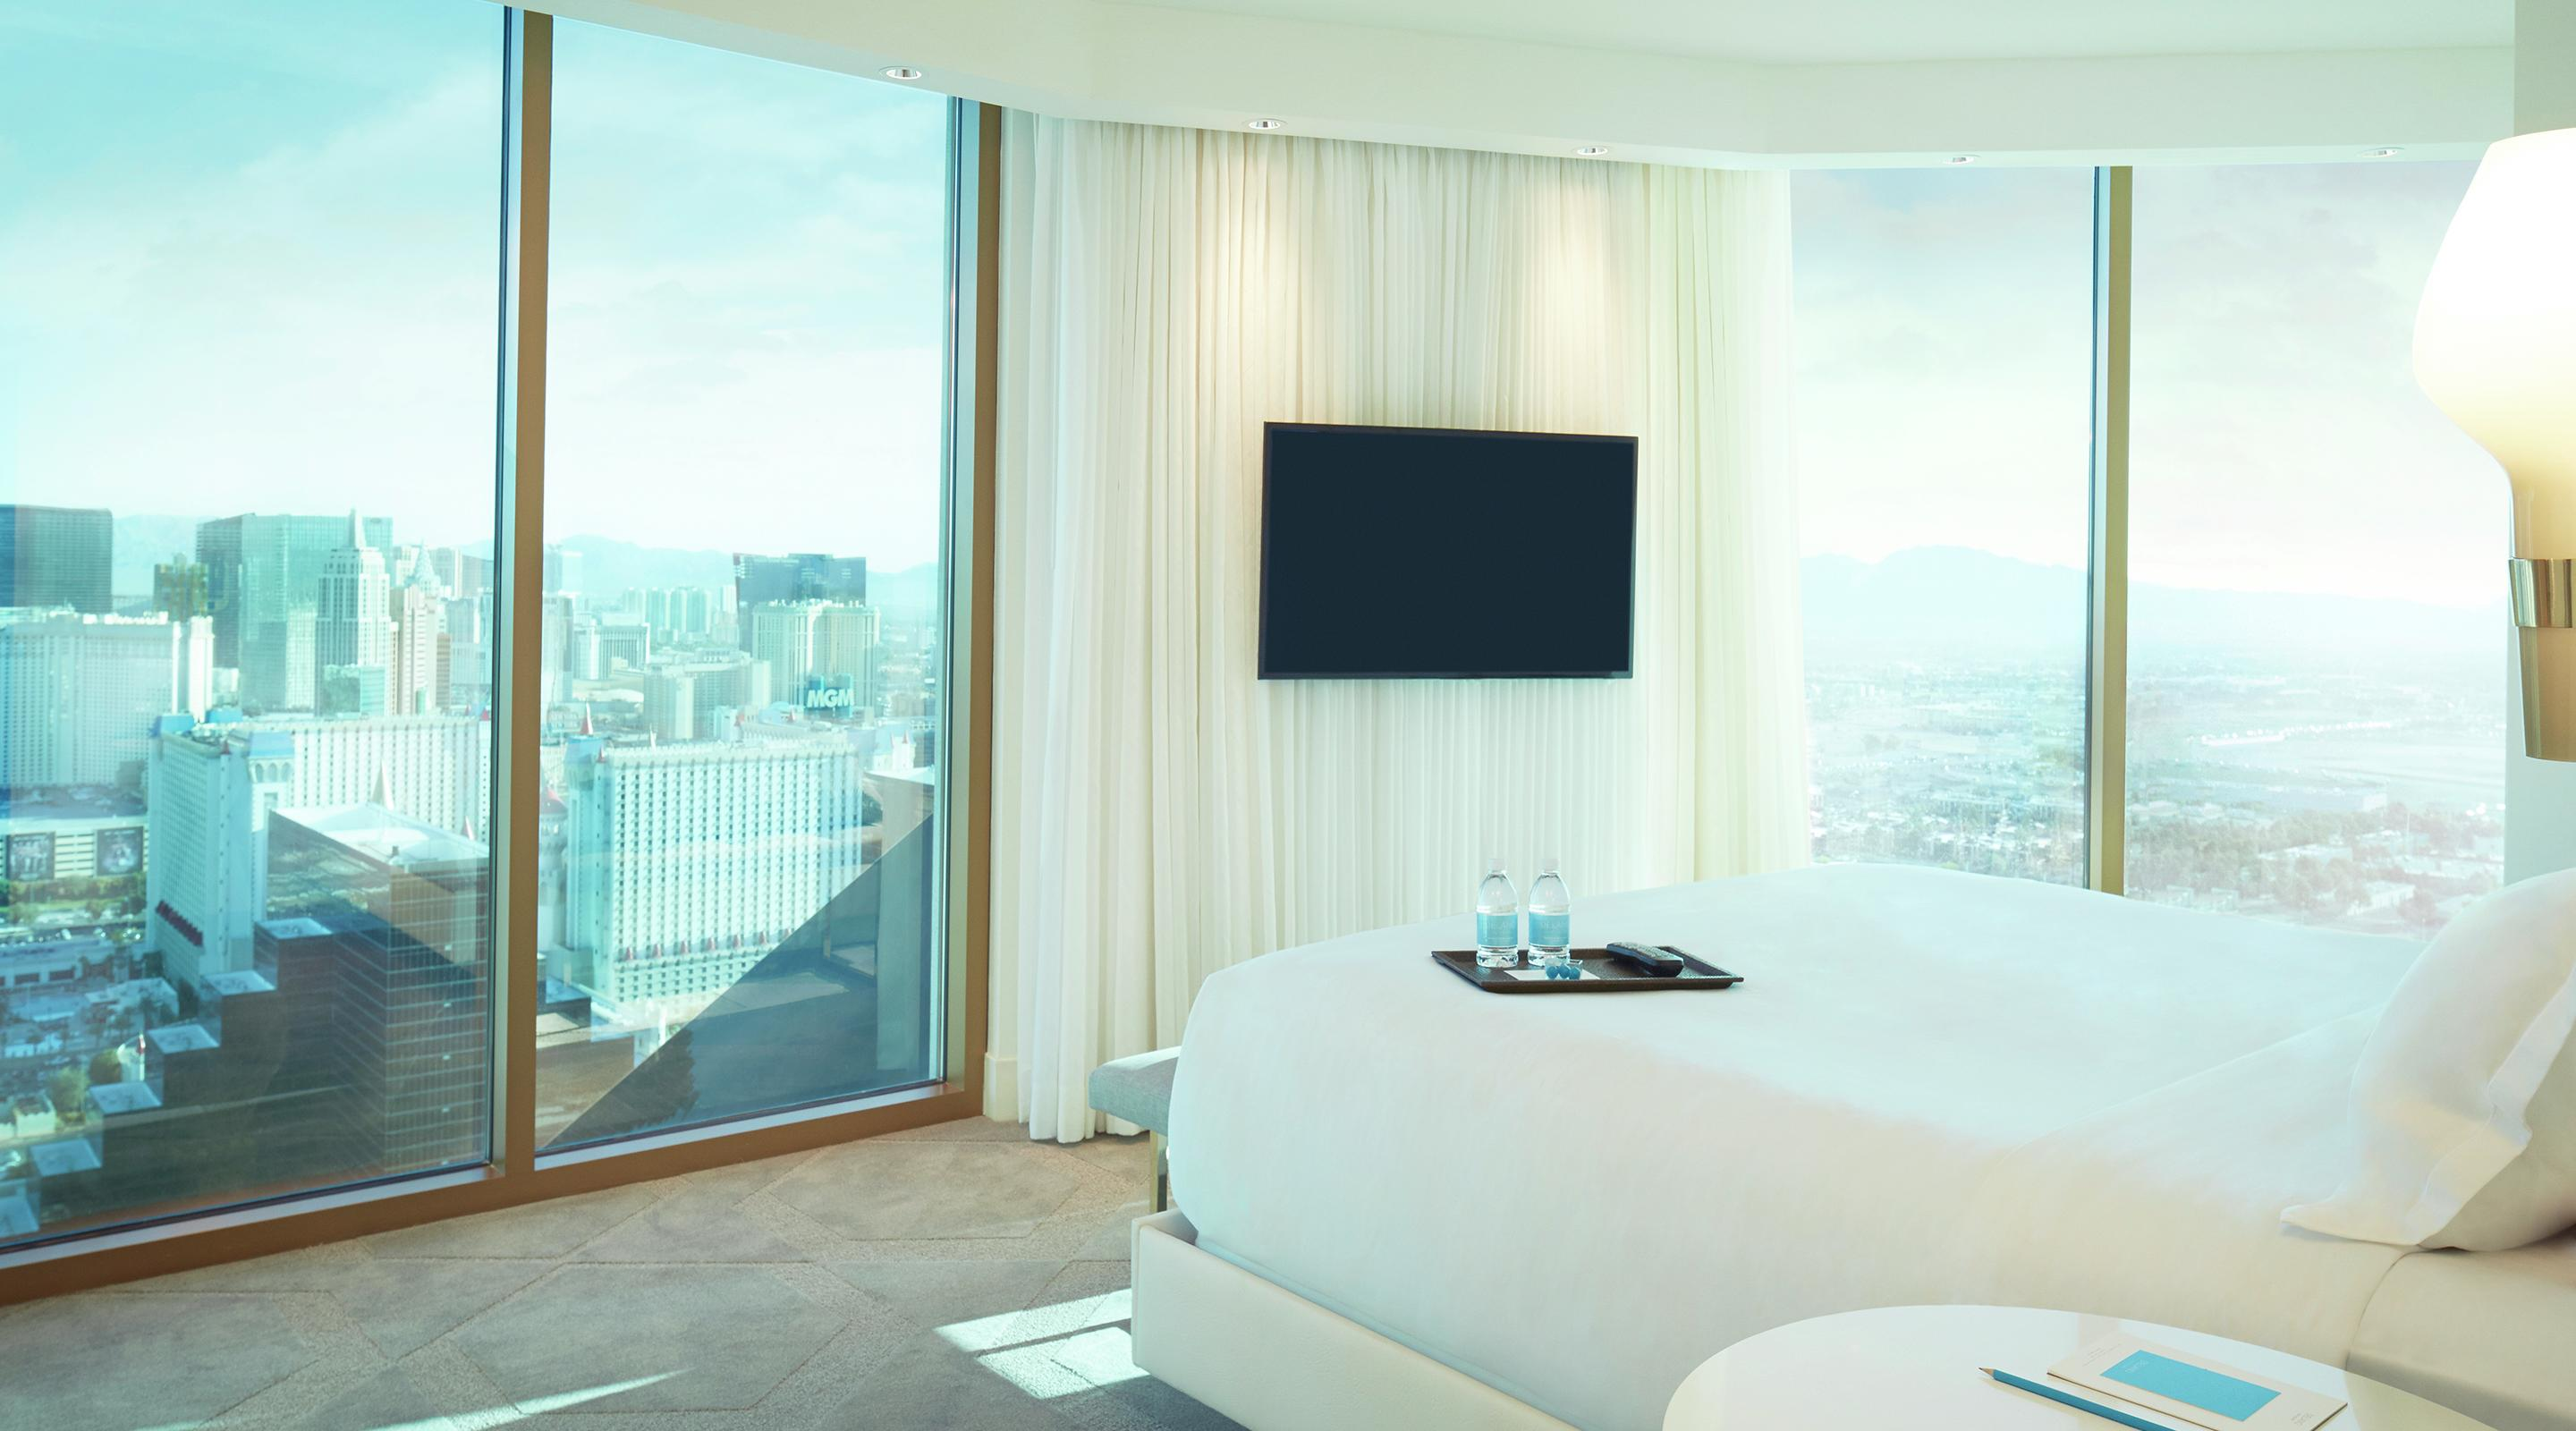 Las Vegas Hotels With 2 Bedroom Suites Scenic Suite Delano Las Vegas